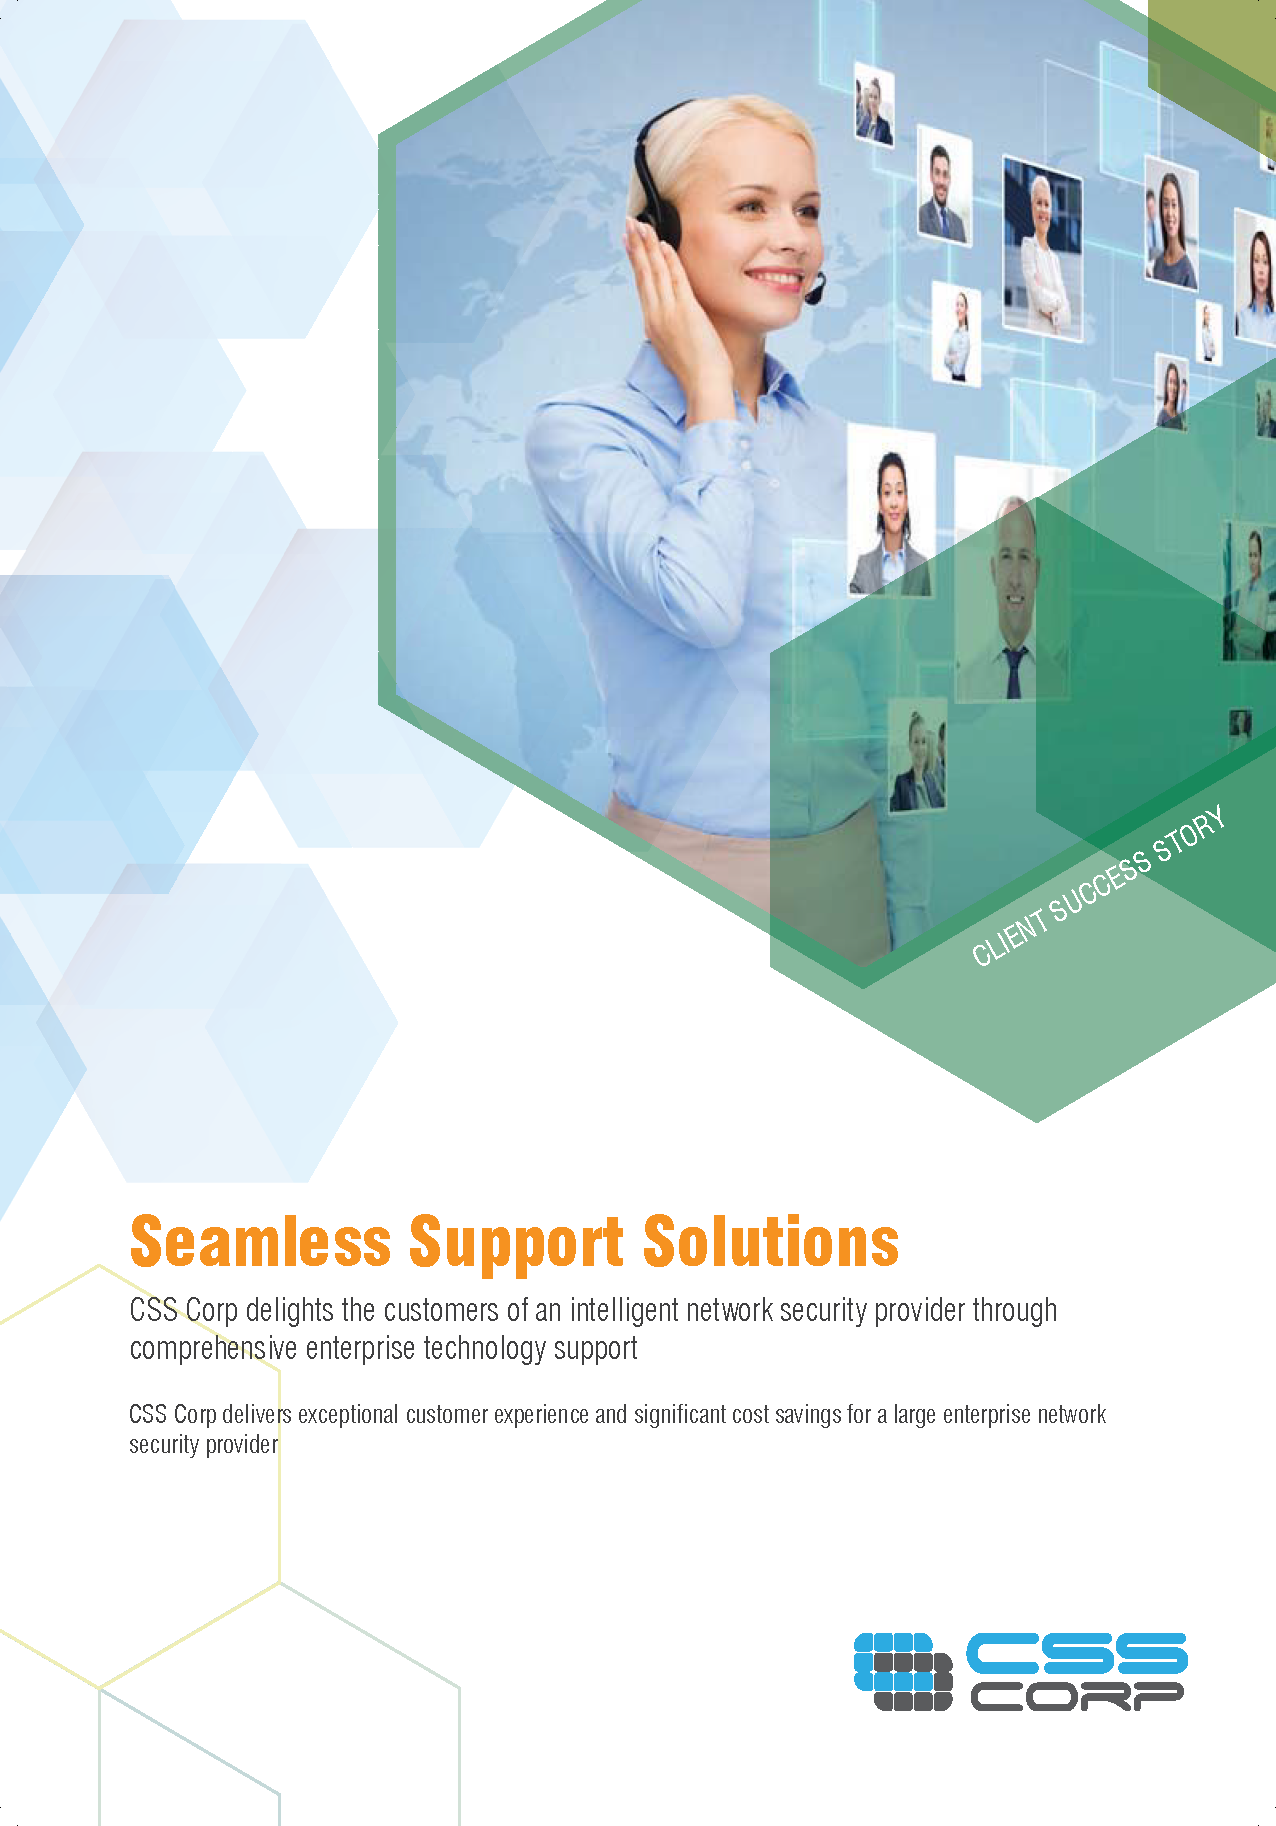 Seamless Support Solution